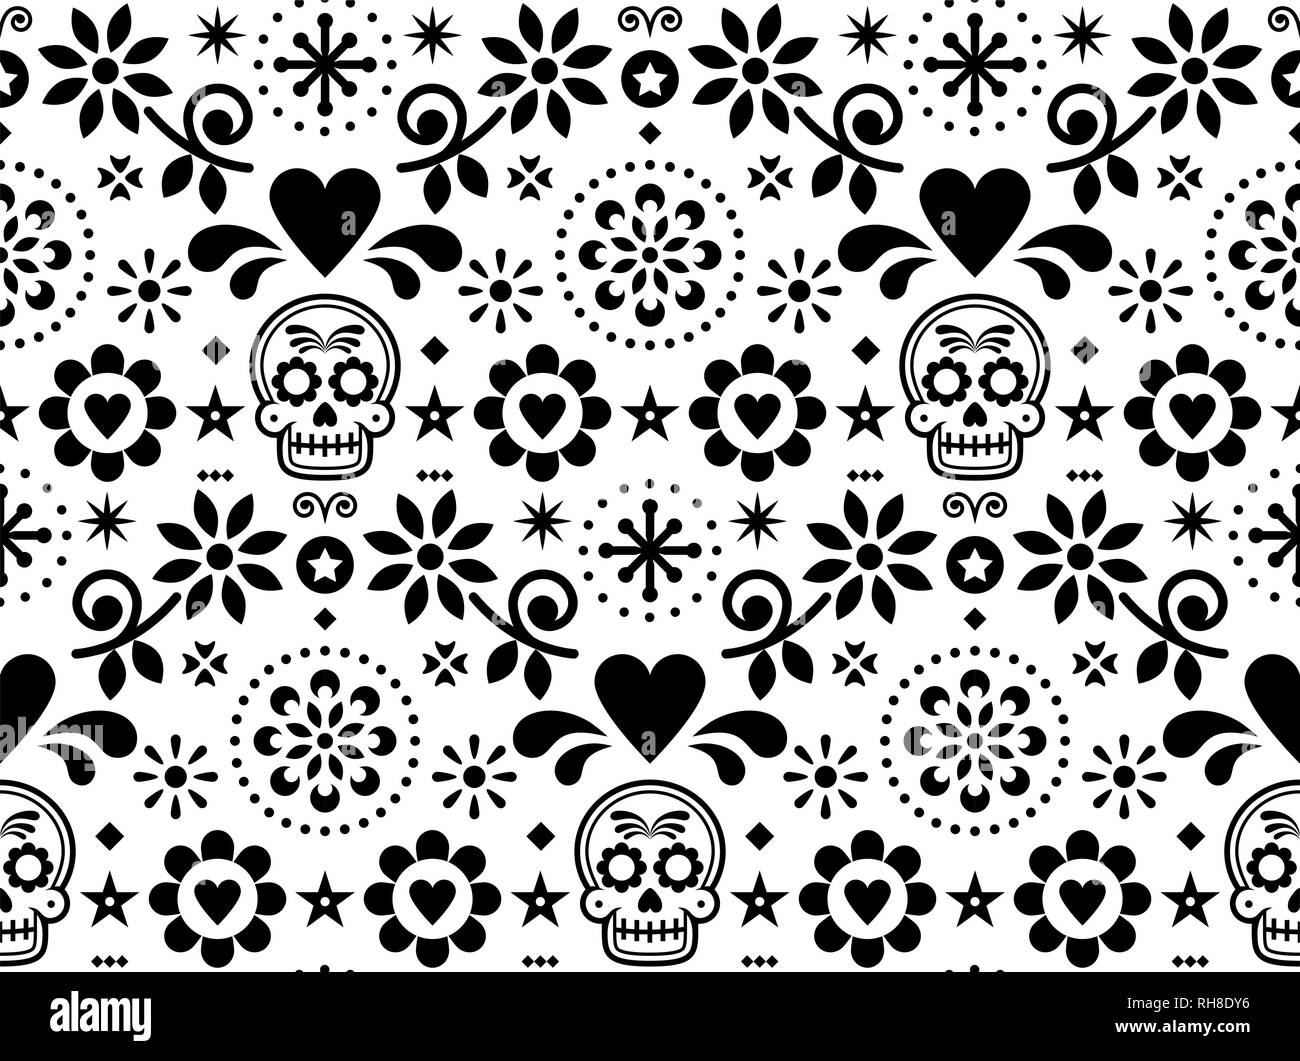 Sugar Skull Vector Seamless Pattern Inspired By Mexican Folk Art Dia De Los Muertos Repetitive Design Black And White Stock Vector Image Art Alamy